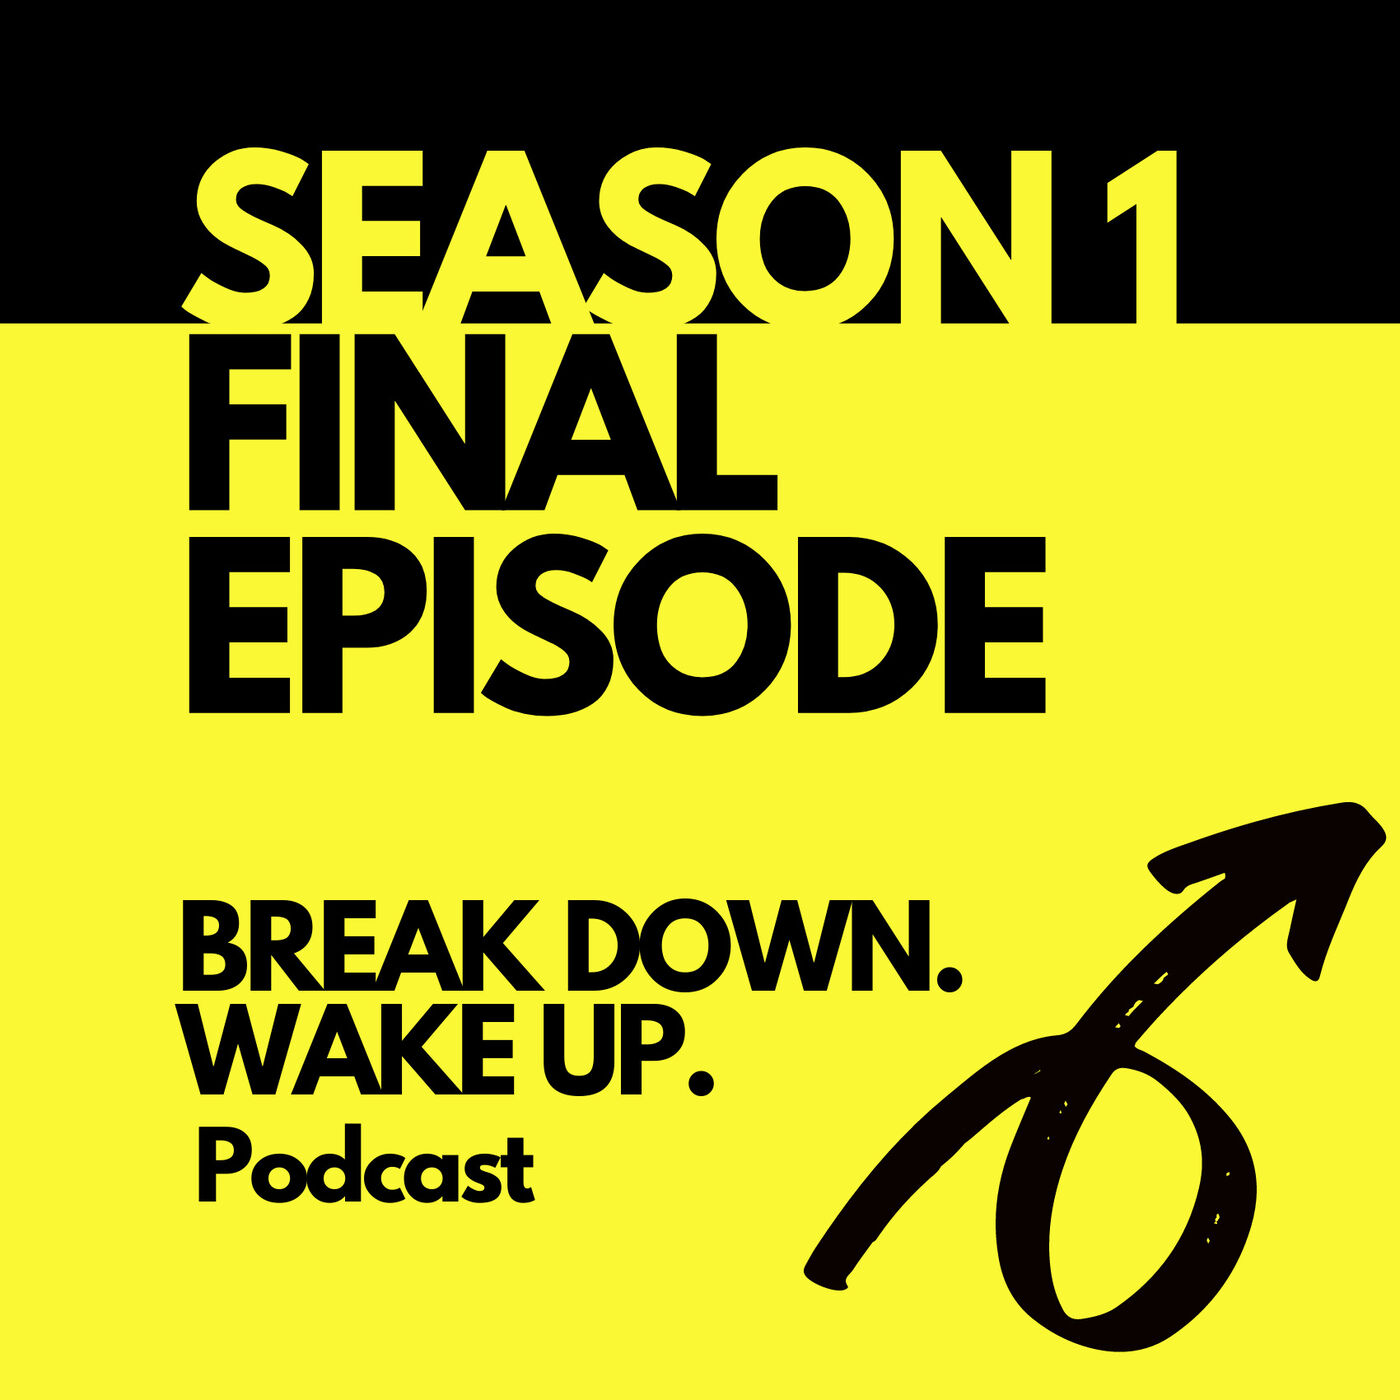 032 - FINAL EPISODE SEASON 1 Break Down. Wake Up. podcast :)